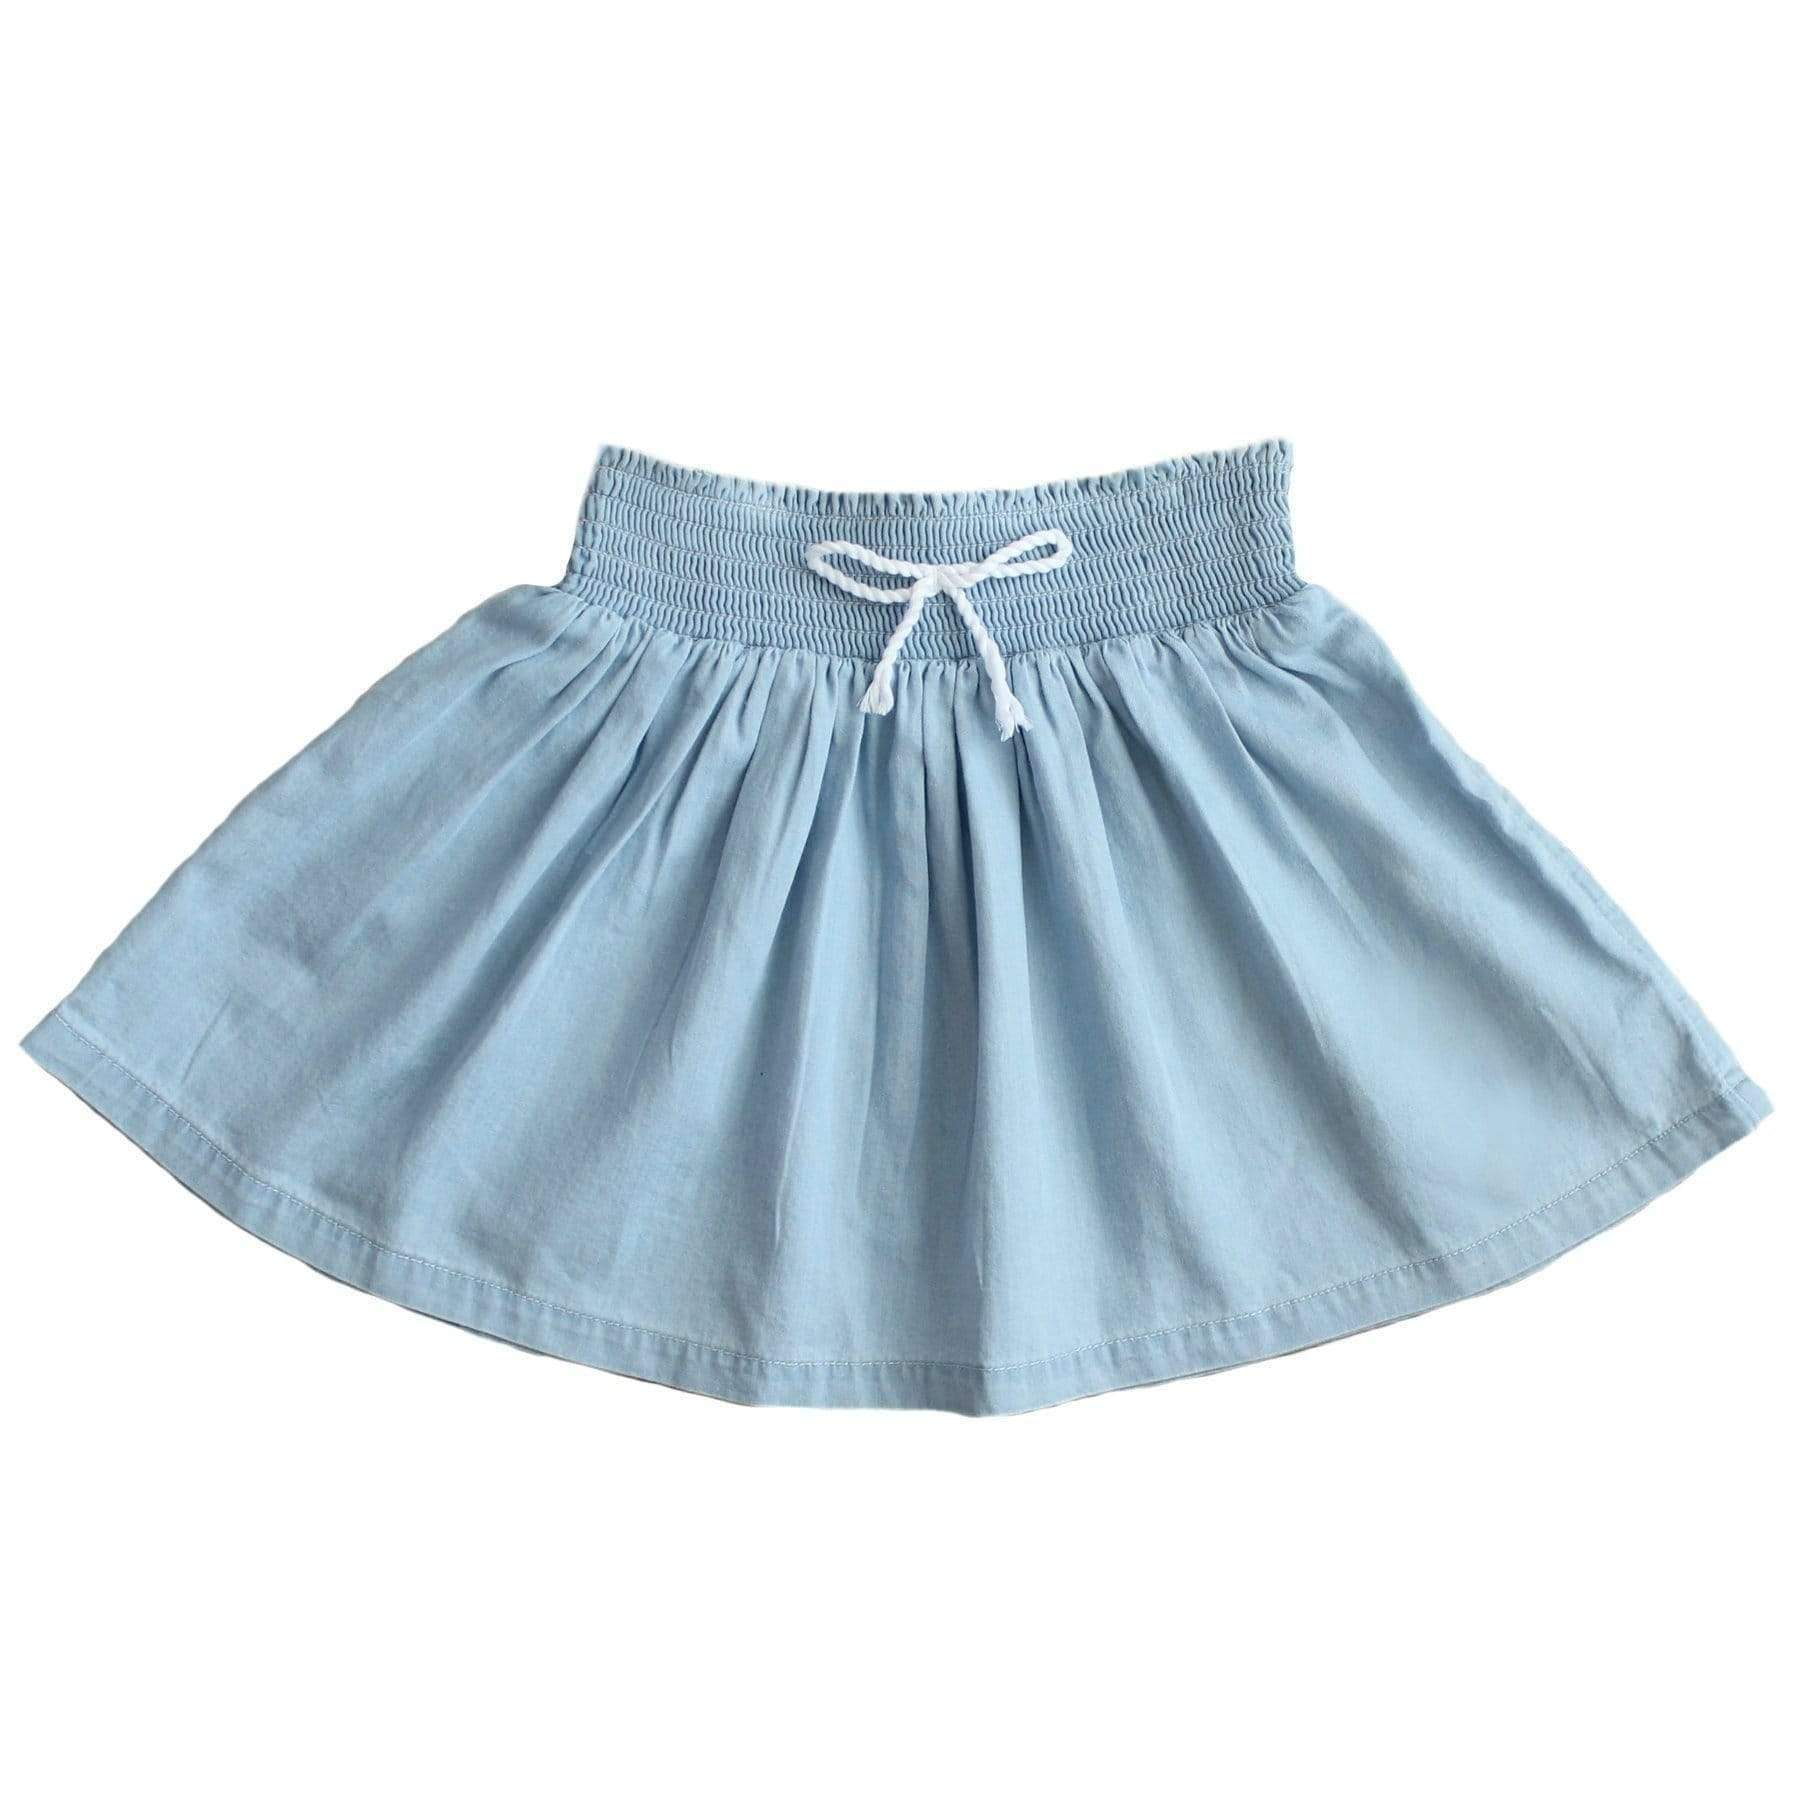 DOL Skirt - Wash Denim